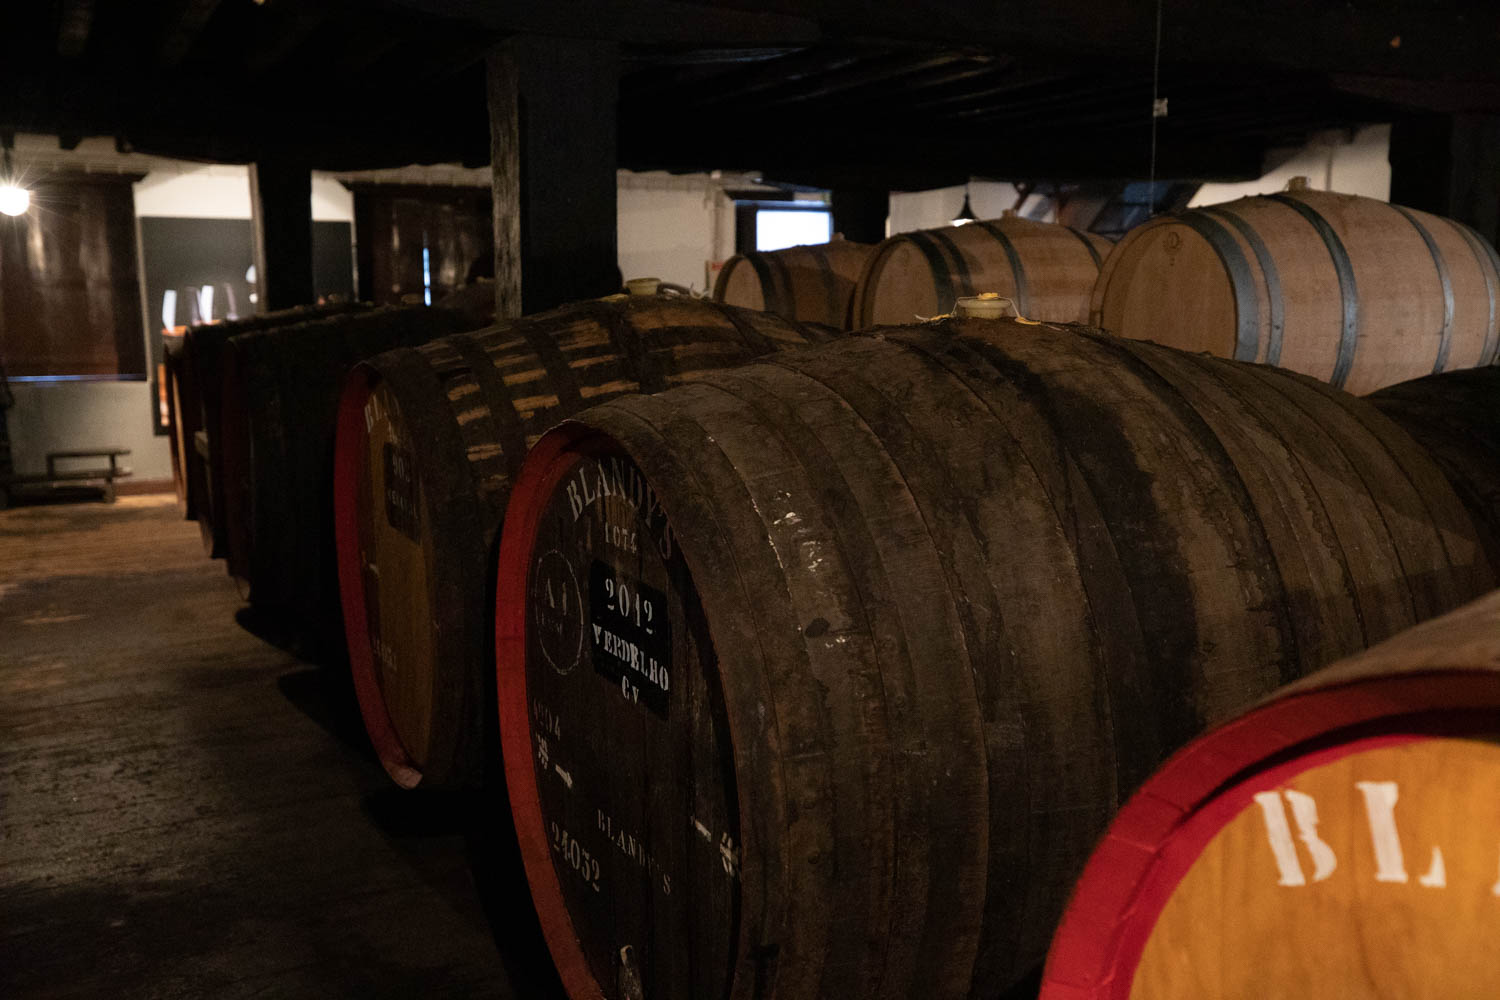 Old wine barrels at the Madeira Wine Company